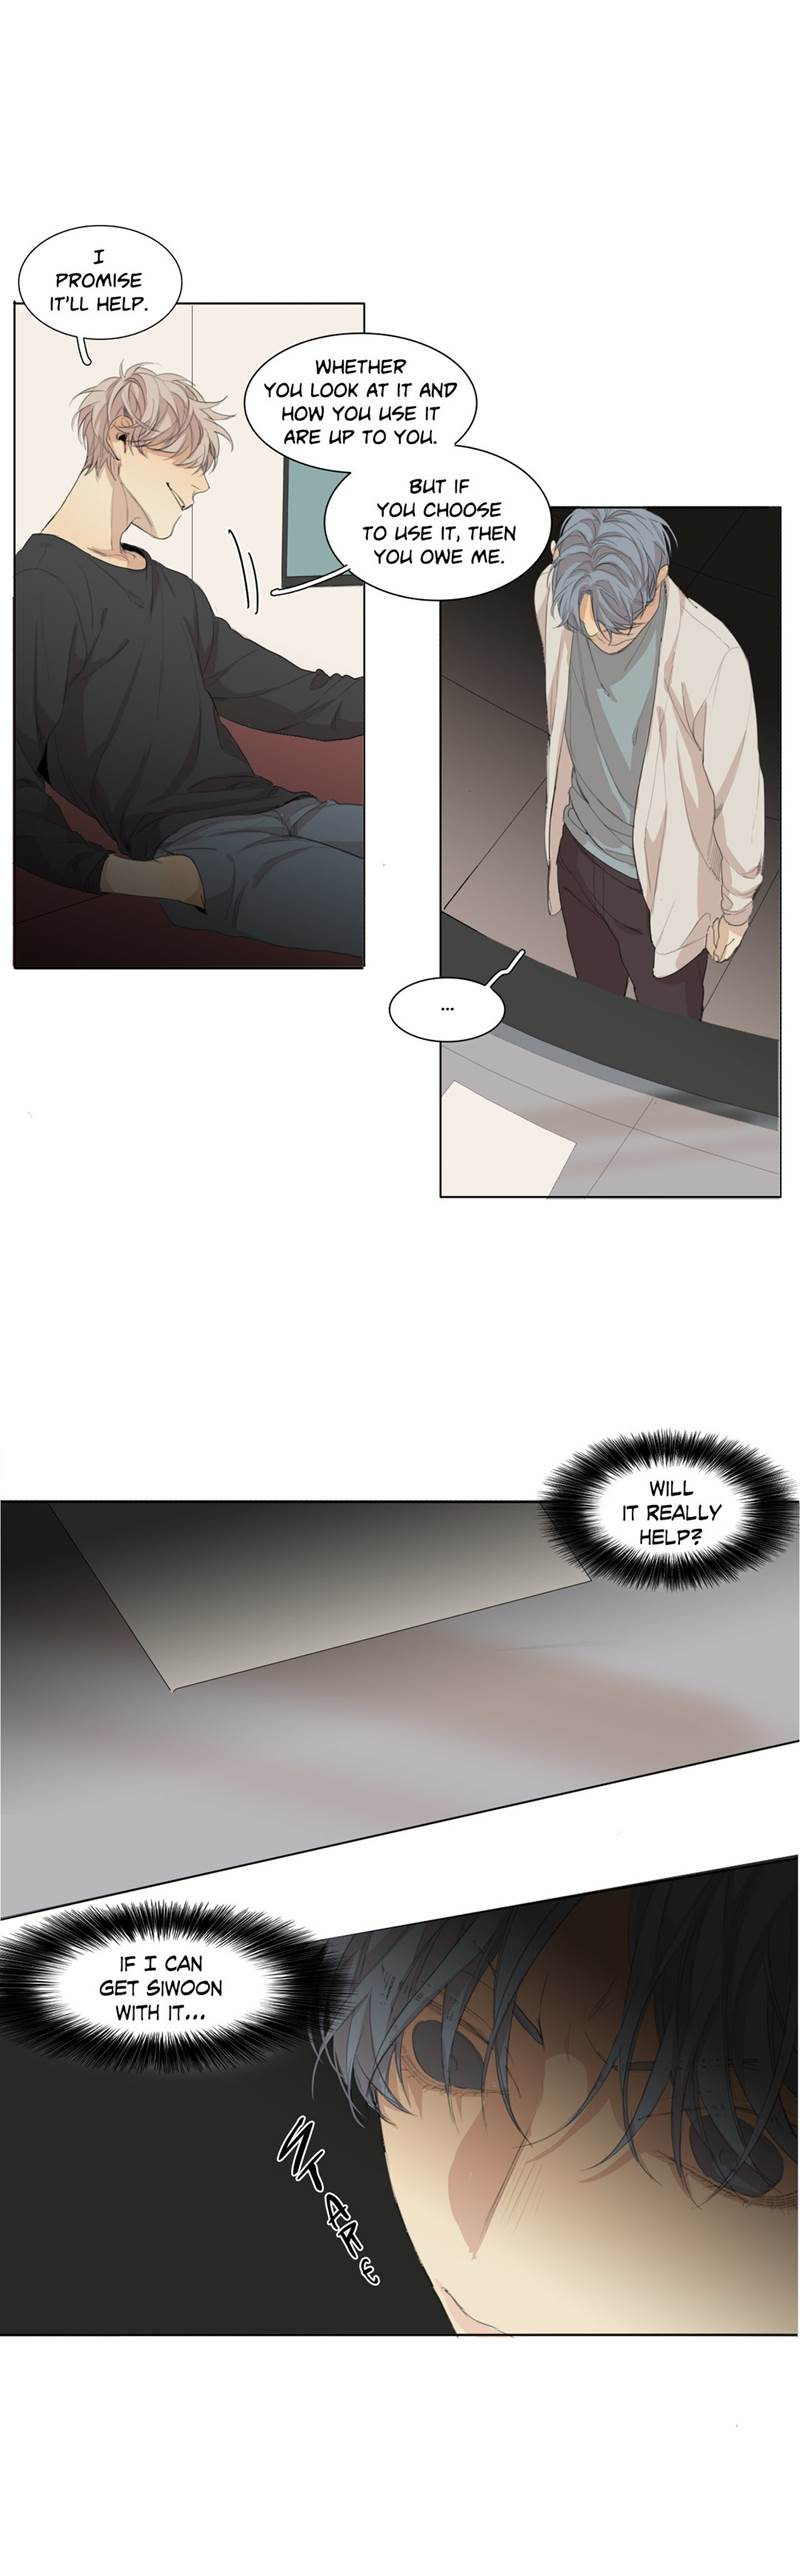 What Lies at the End - Chapter 47